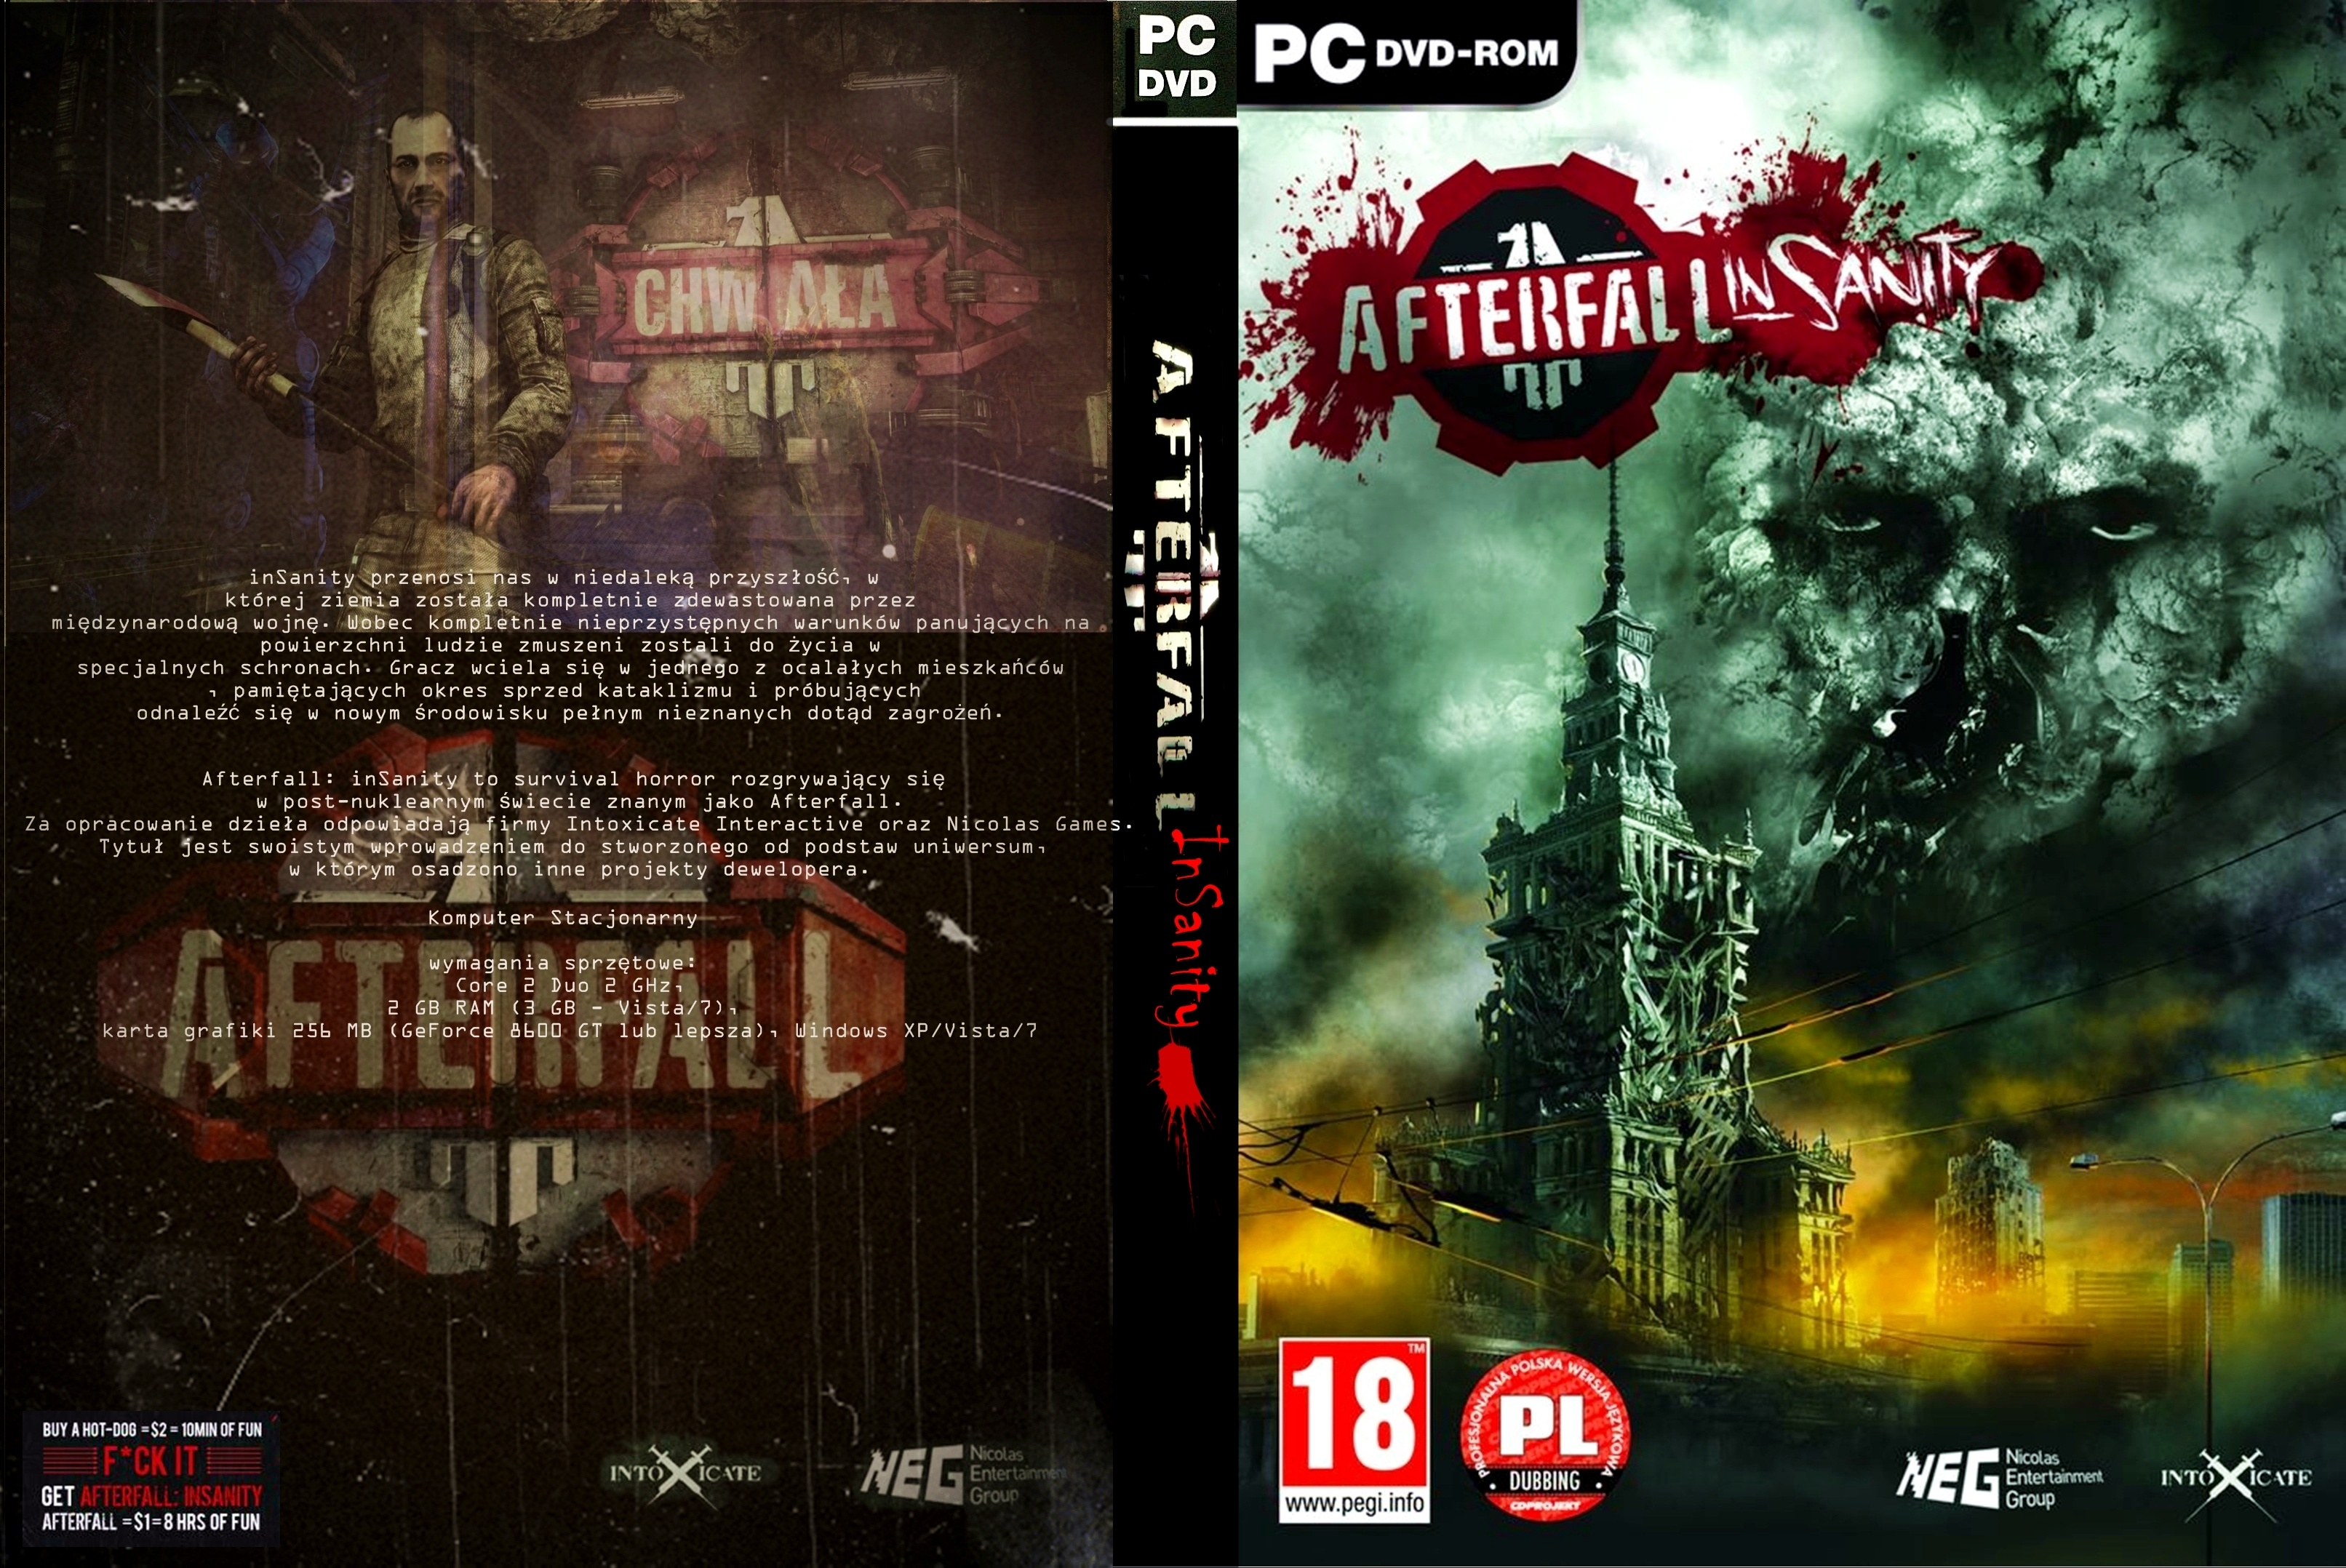 Afterfall: Insanity PL box cover